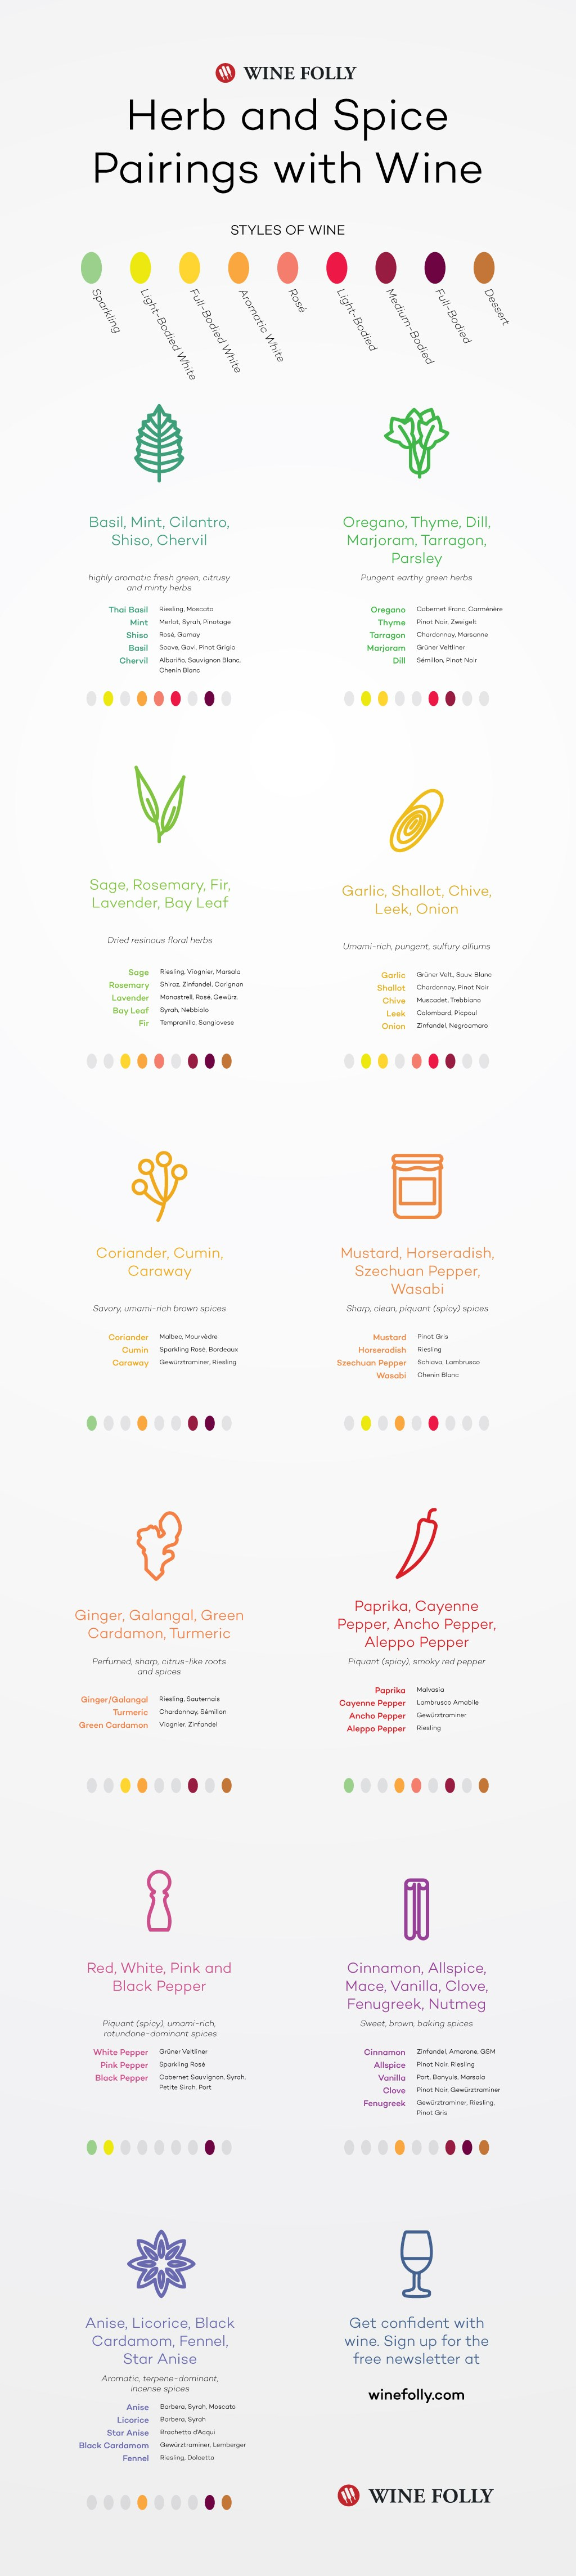 Herb And Spice Pairings With Wine